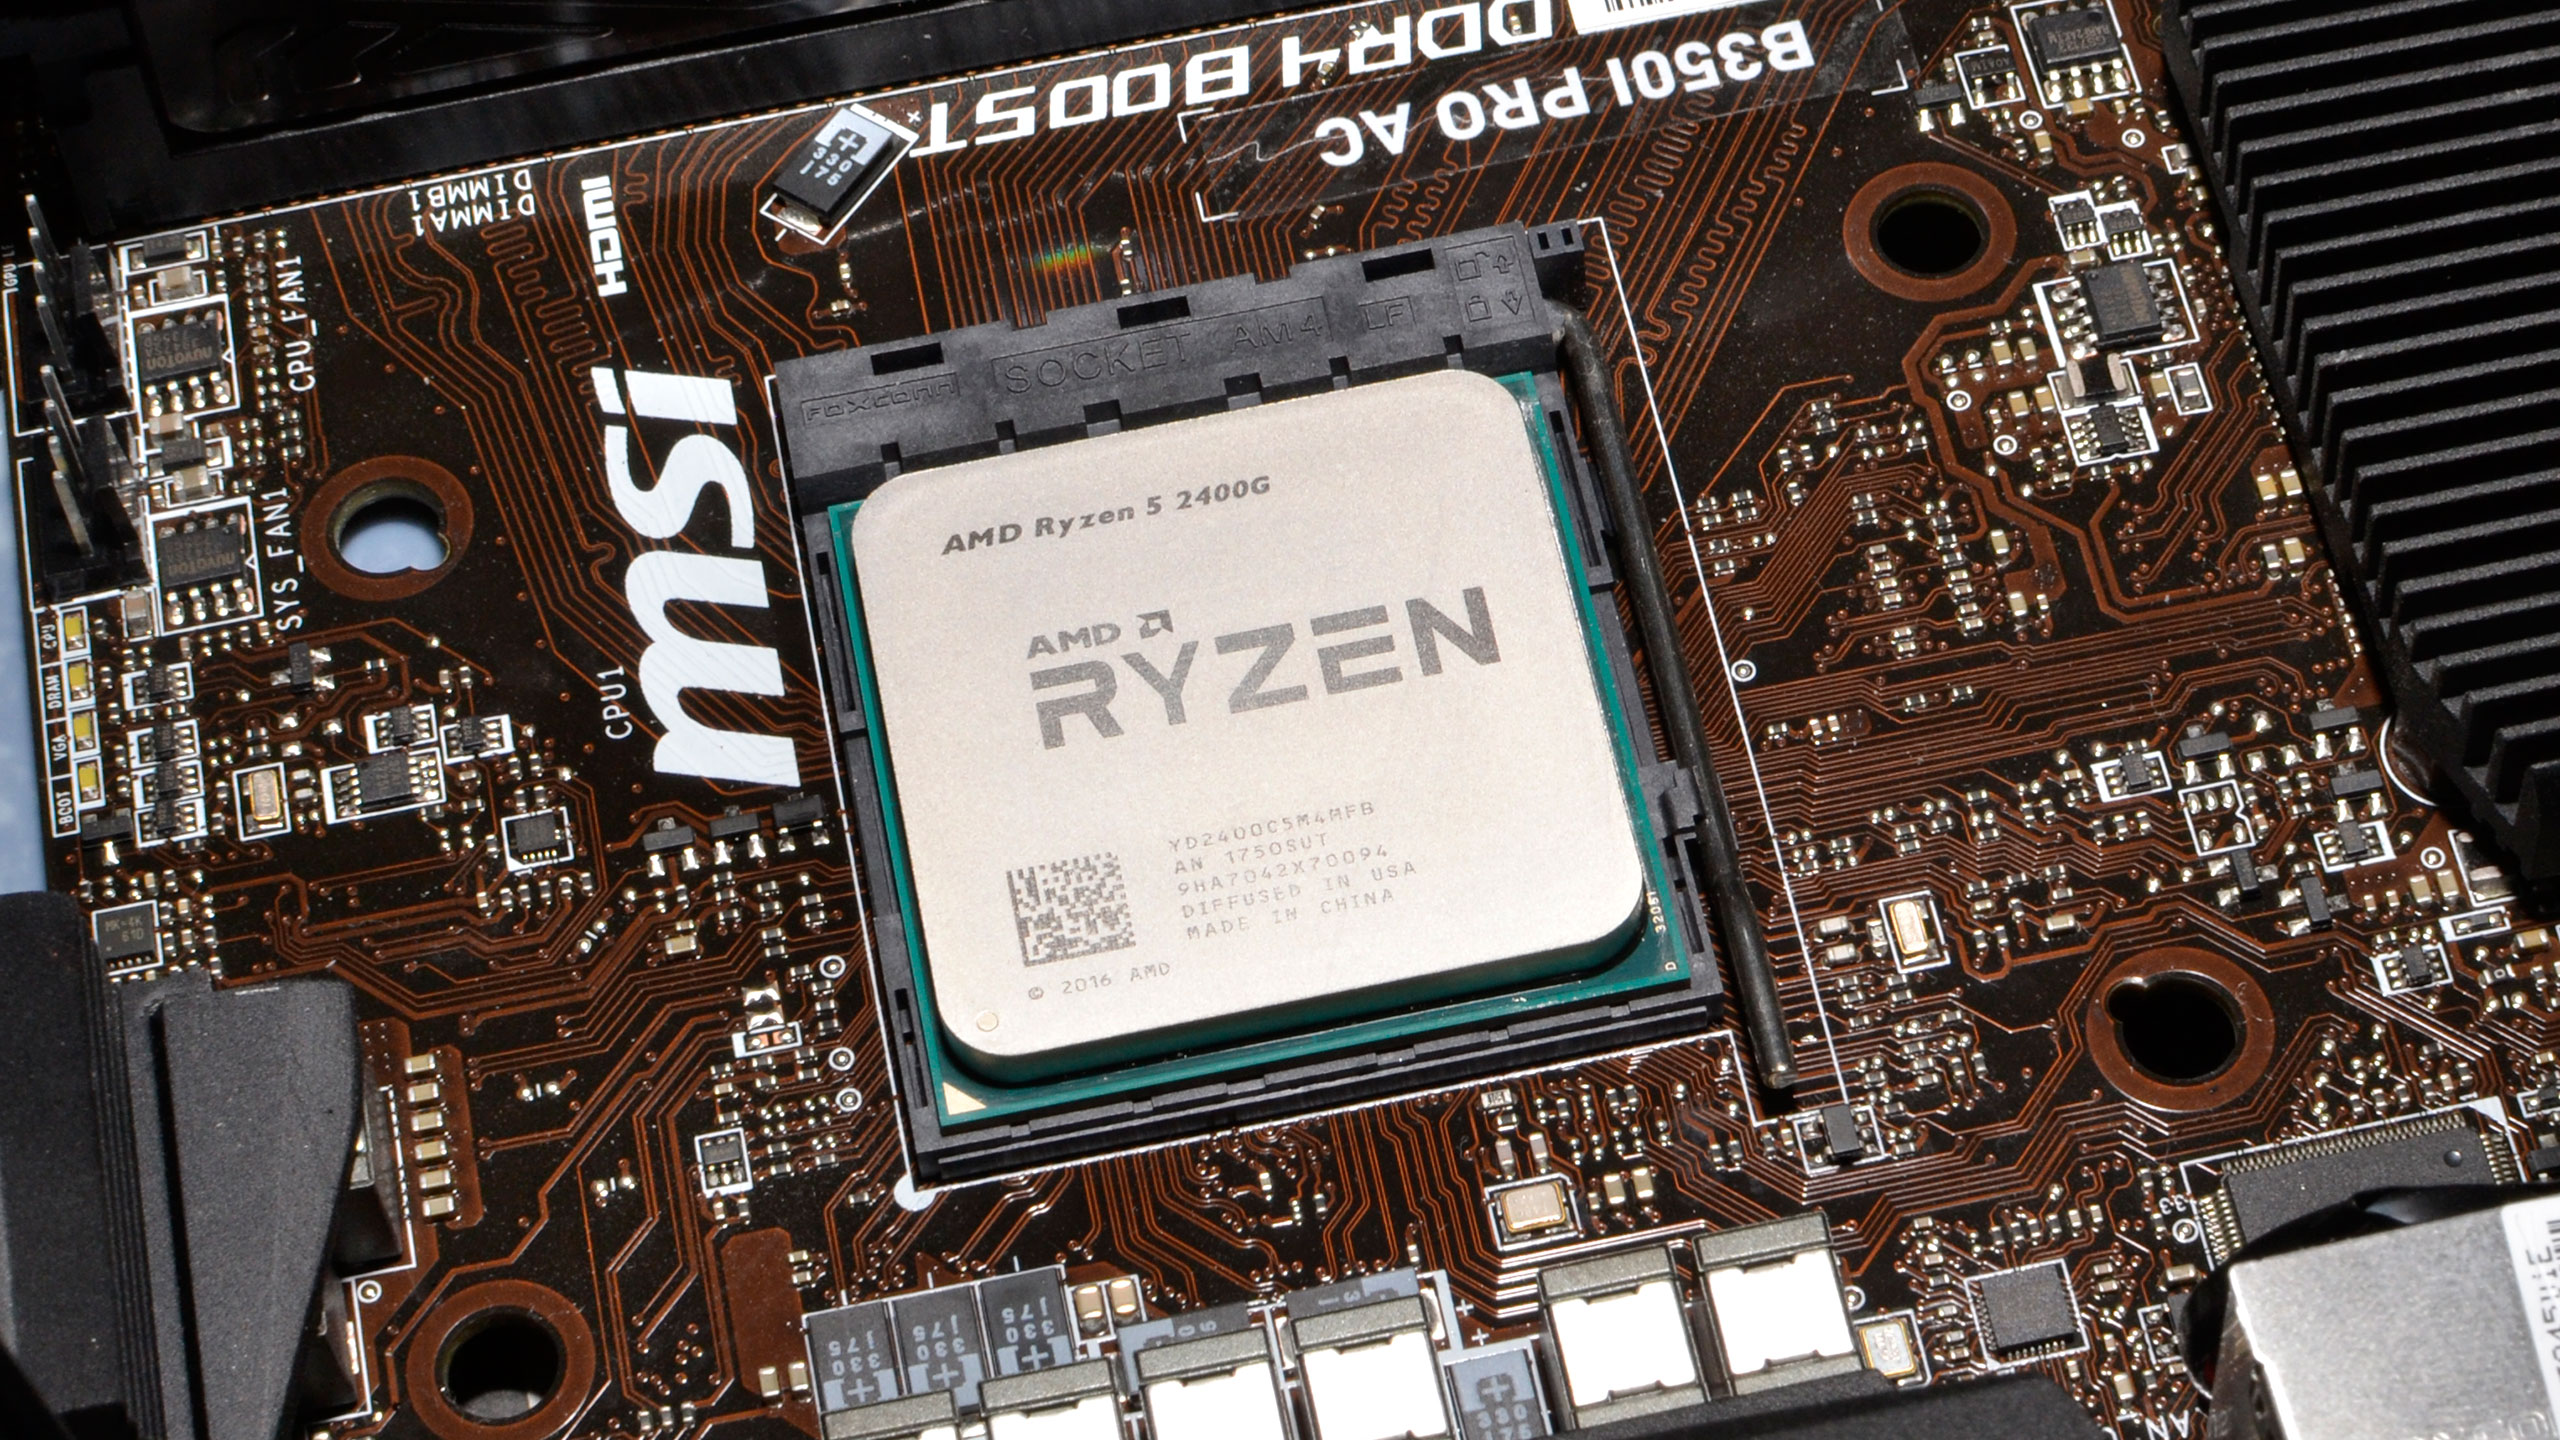 AMD's Ryzen 5 2400G is a good option for a budget gaming PC | PC Gamer